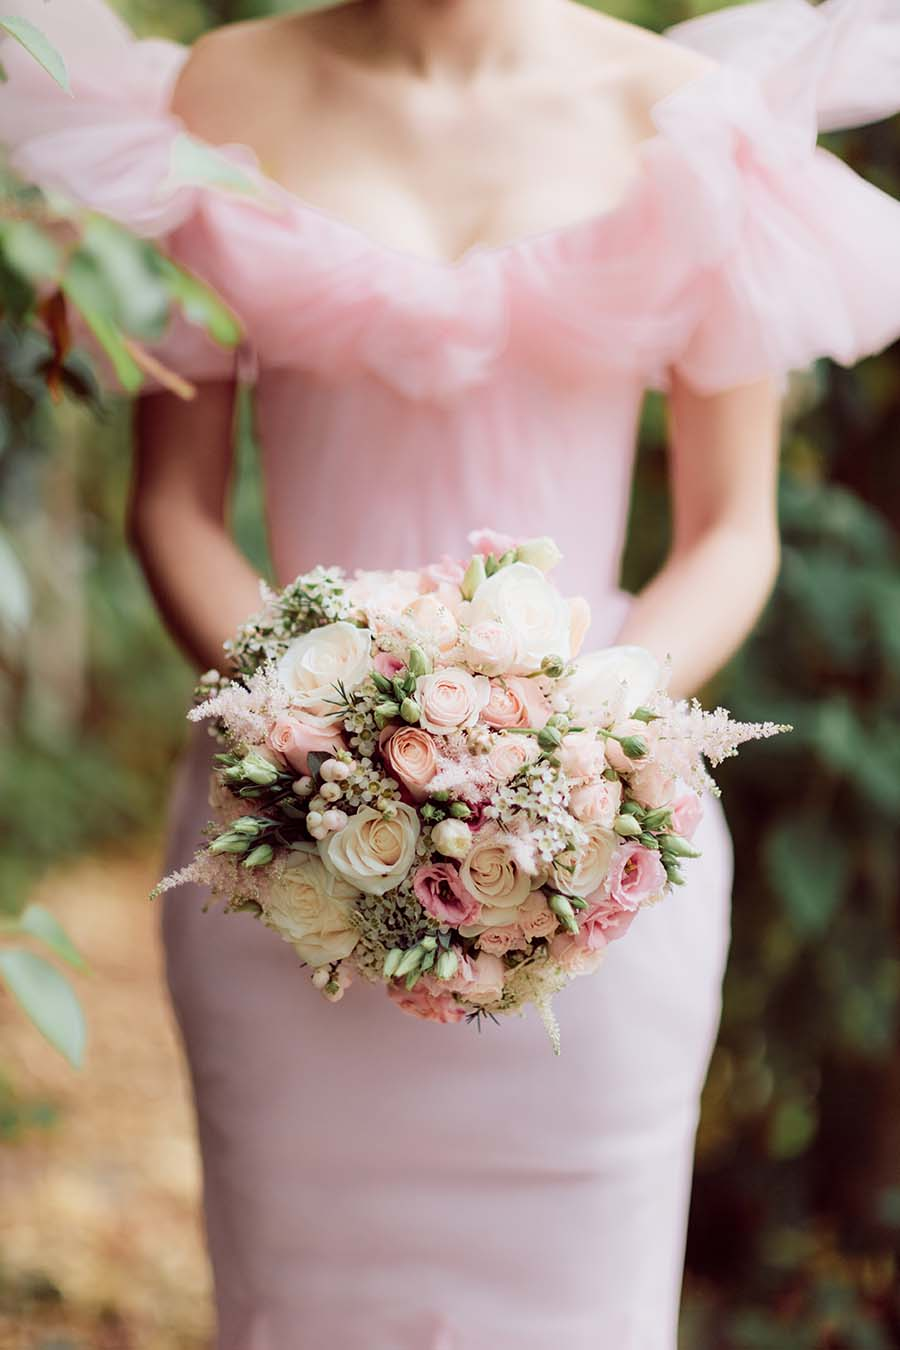 Pink Wedding Dress, Cape And Crown By Chantal Mallet | Lace Wedding Dress By Katya Katya Shehurina | Sanshine Photography